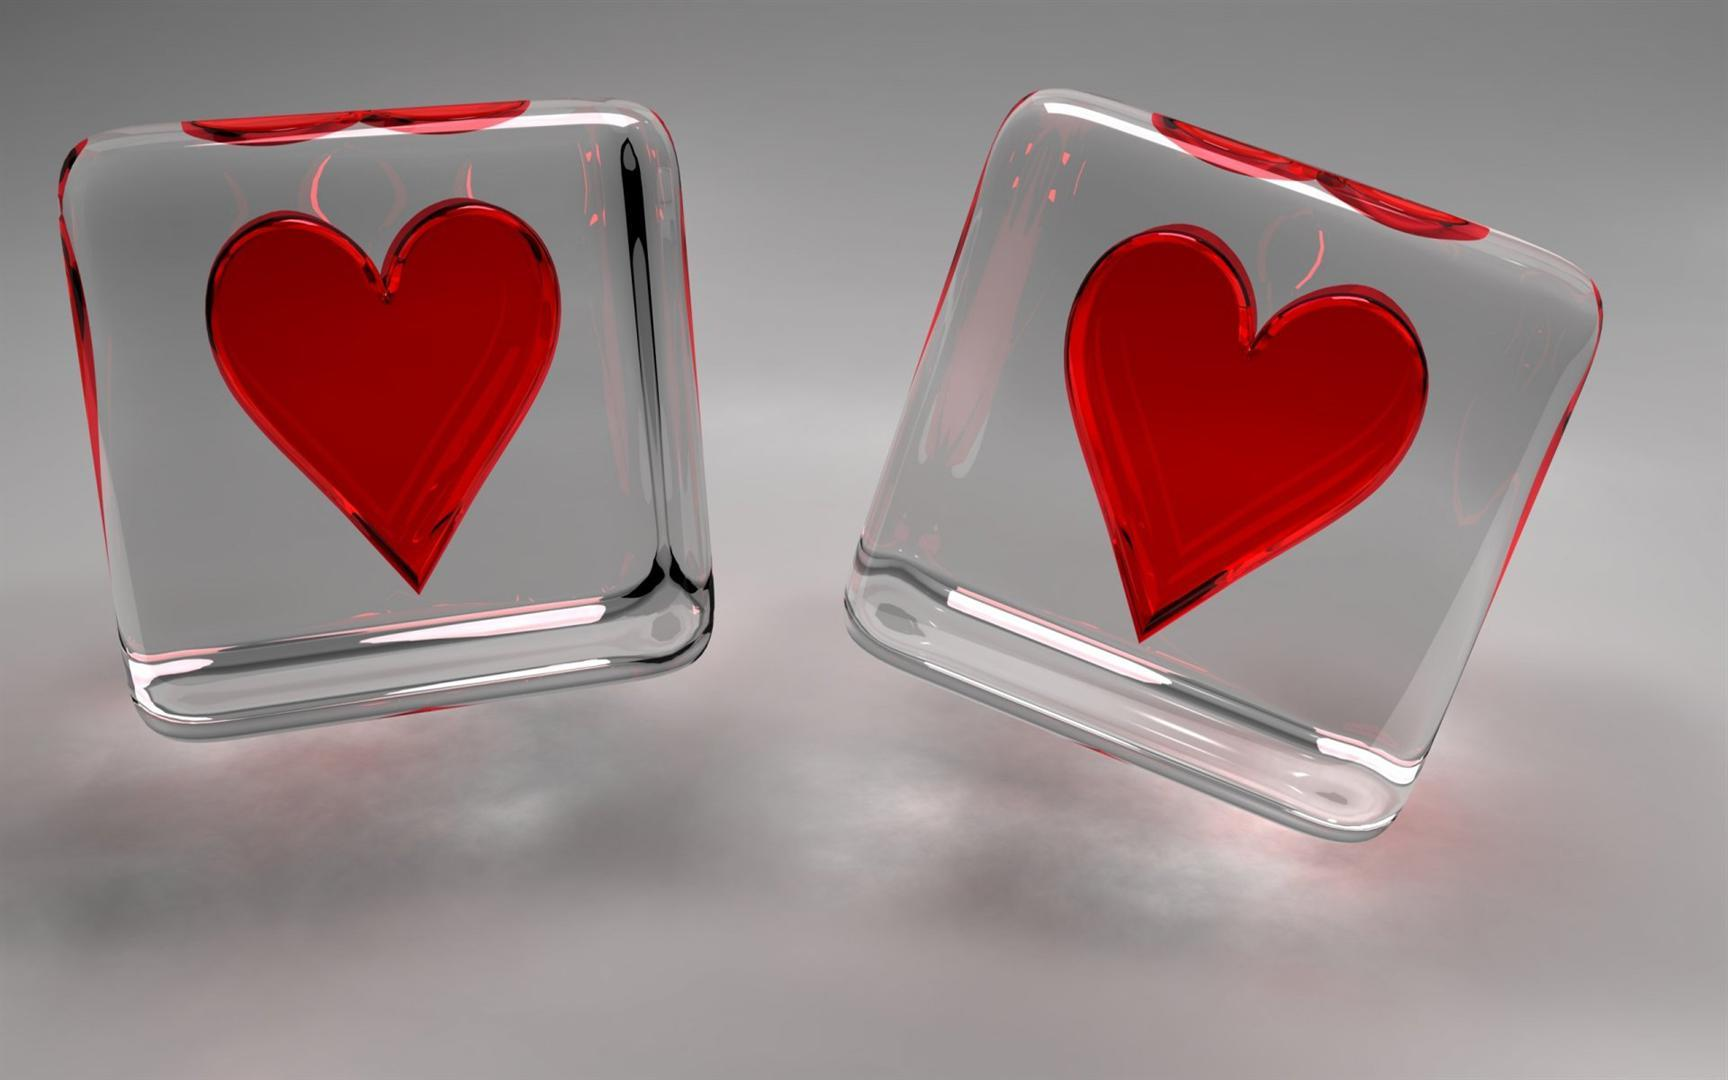 Love Wallpaper 3d Free : 3d Love Wallpapers - Wallpaper cave